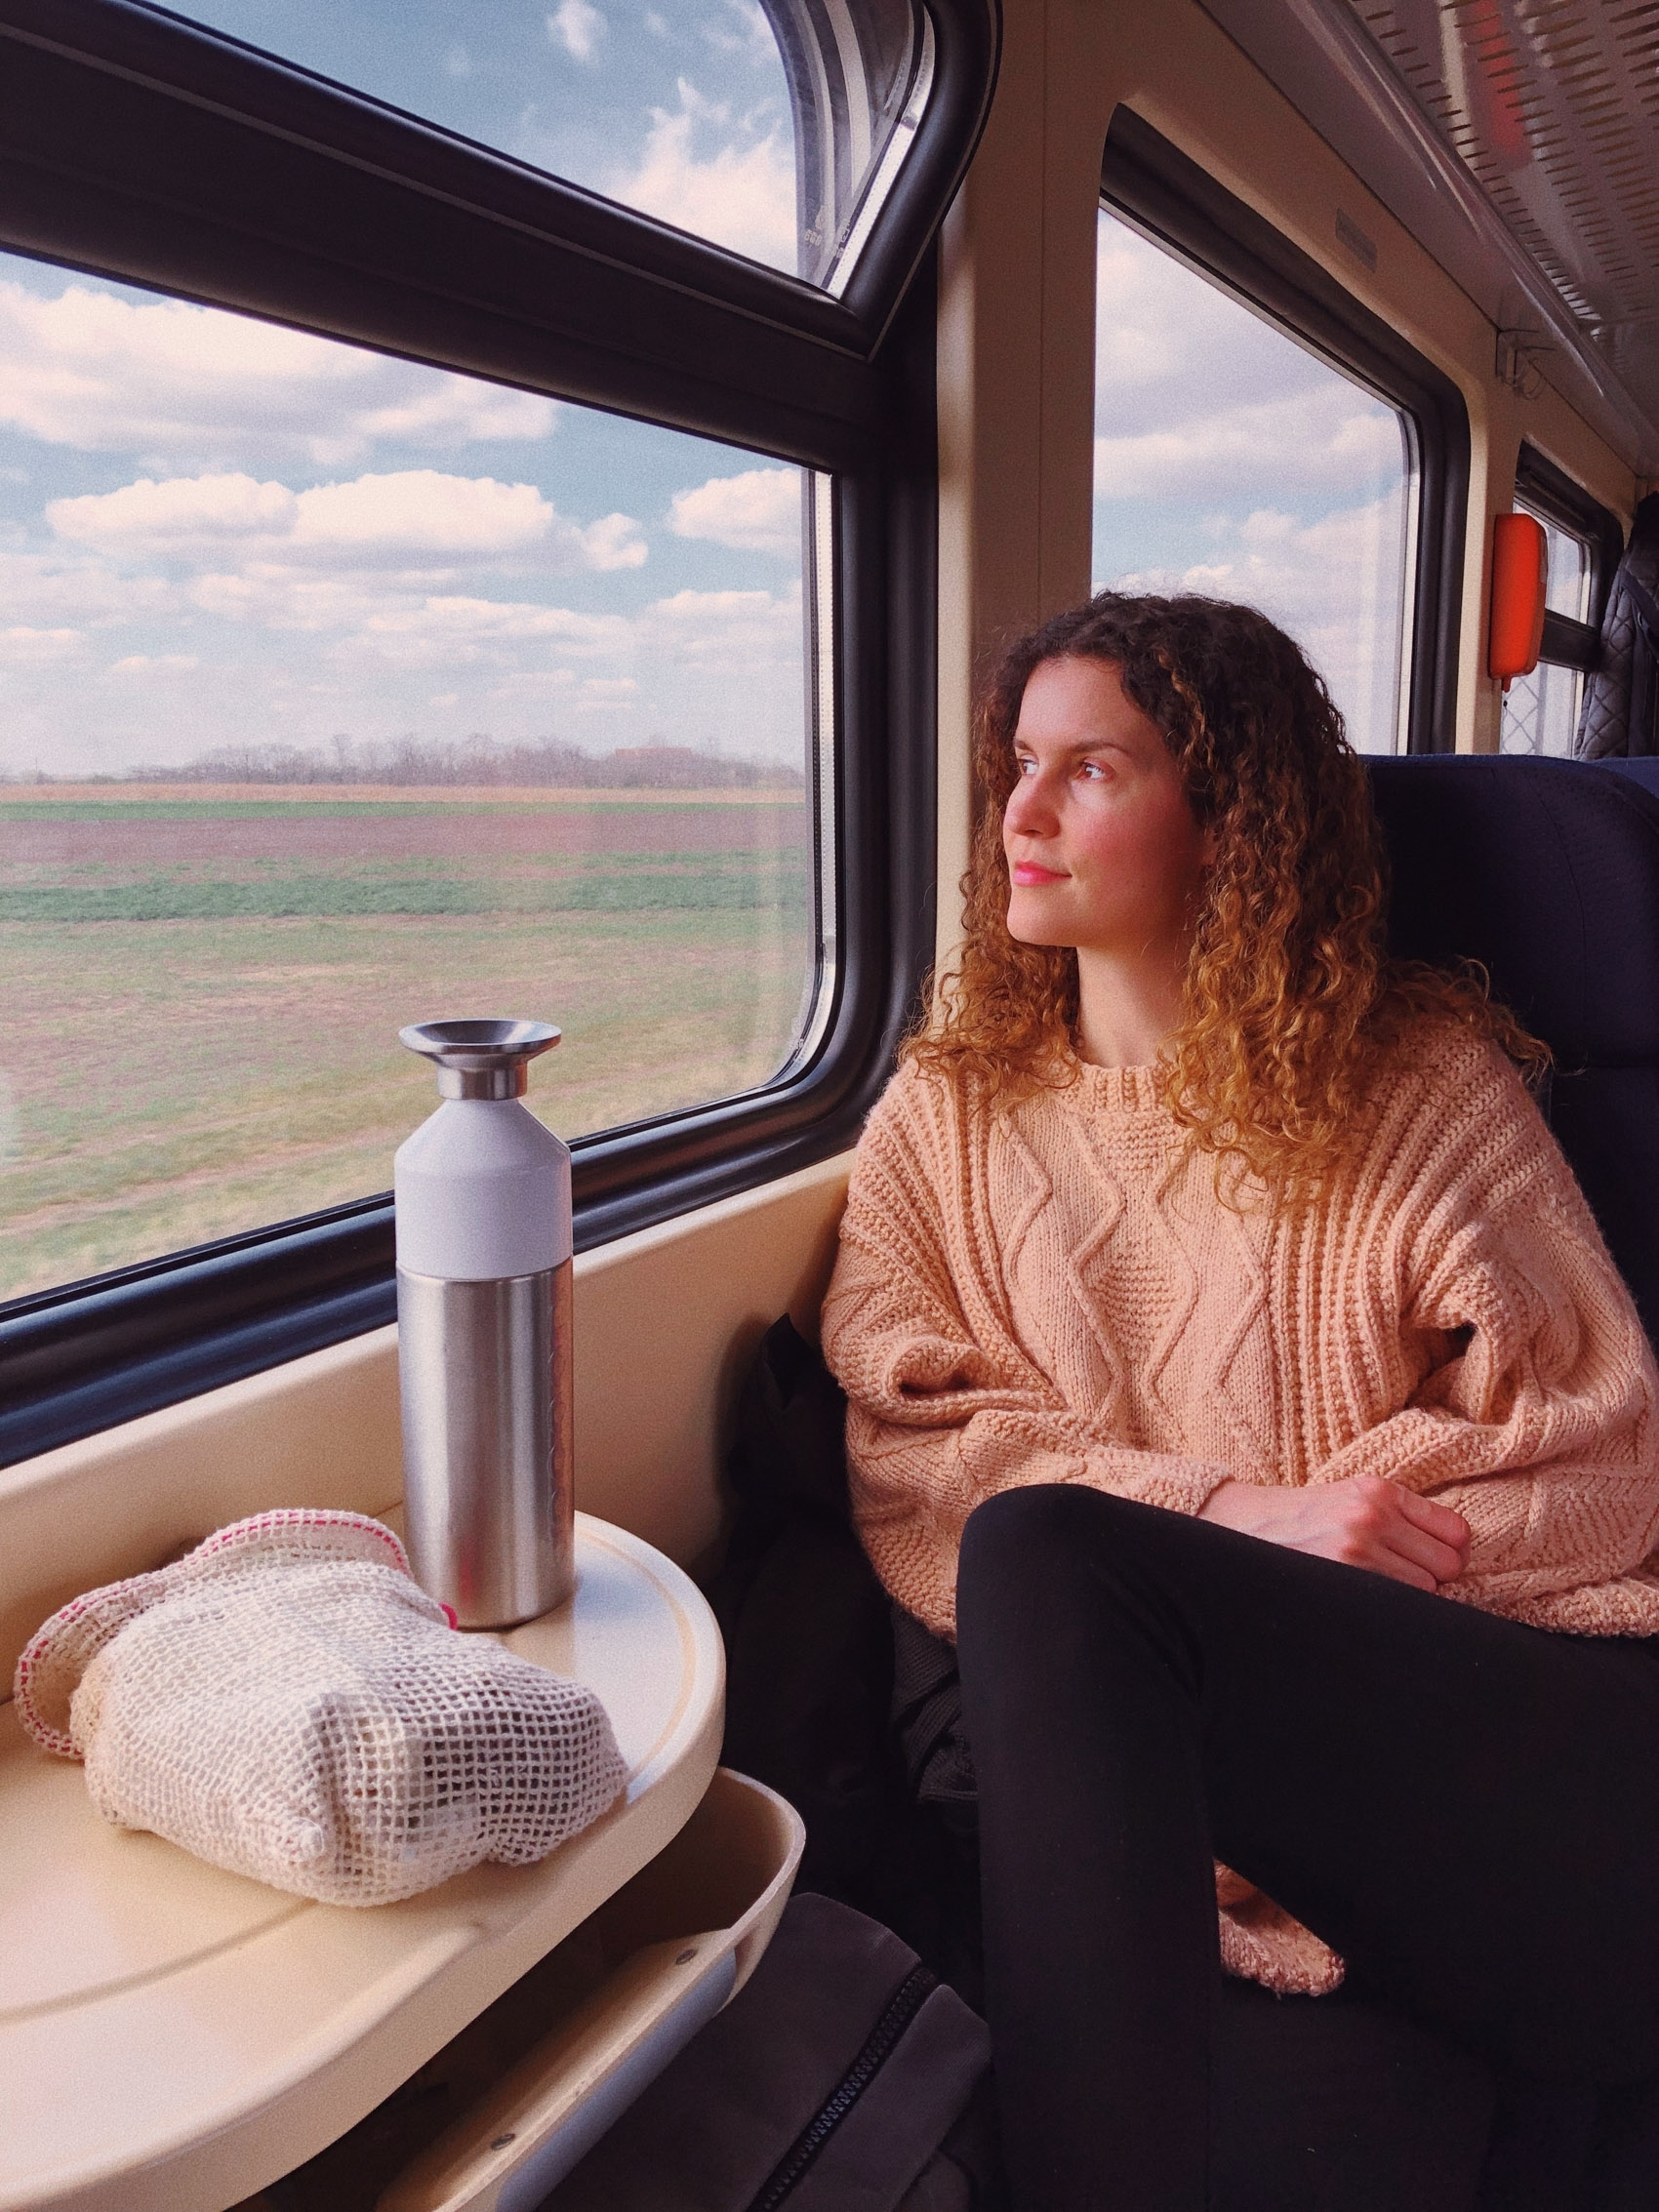 Overnight Train From Serbia To Berlin Via Budapest - Heylilahey. pertaining to Travel To Budapest By Train